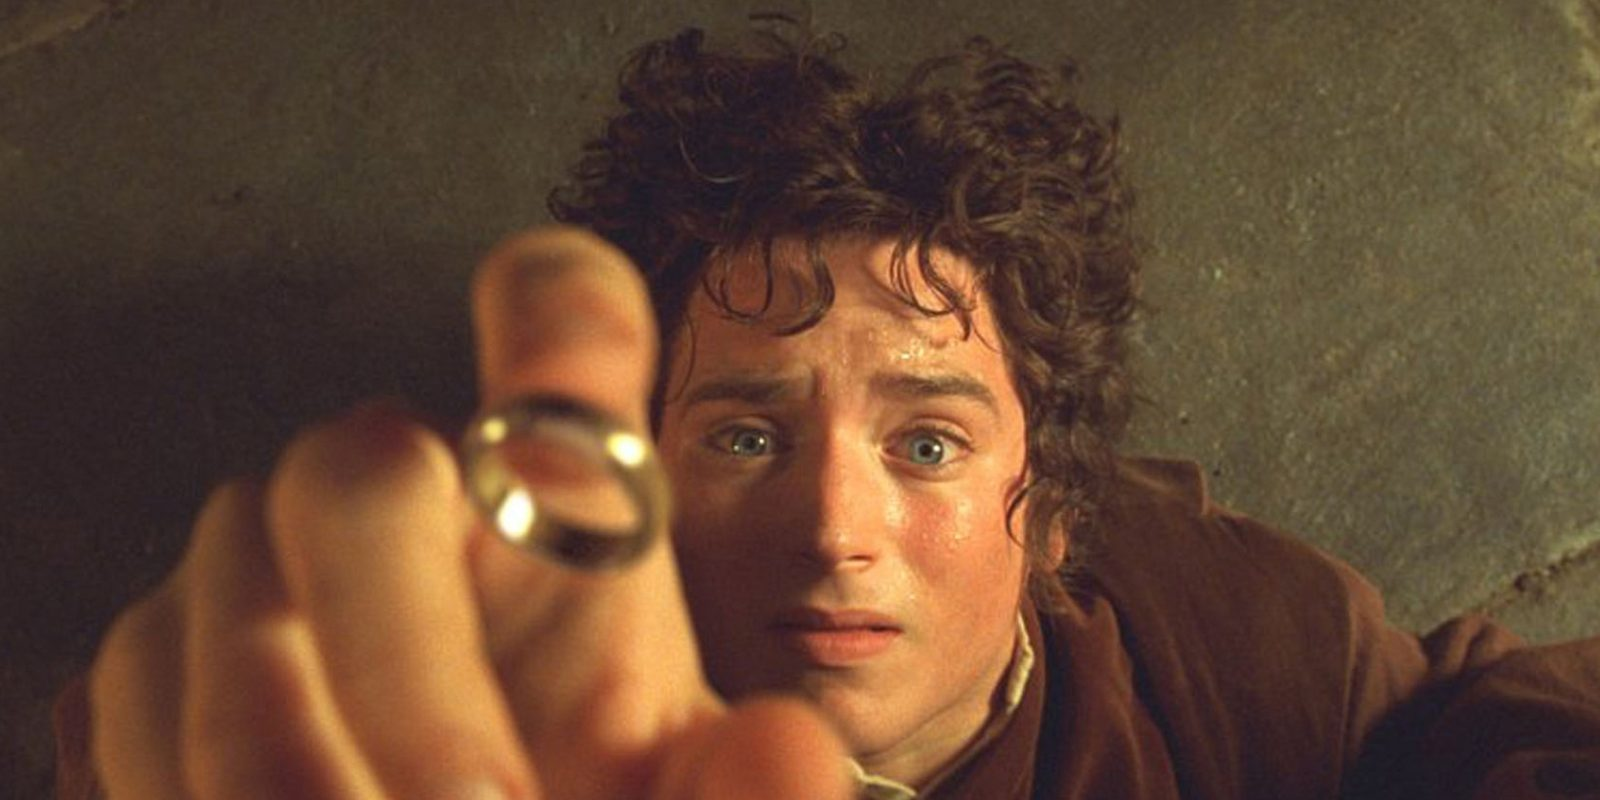 Follow Frodo and Sam in Lord of the Rings: One Volume for $3 on Kindle, more